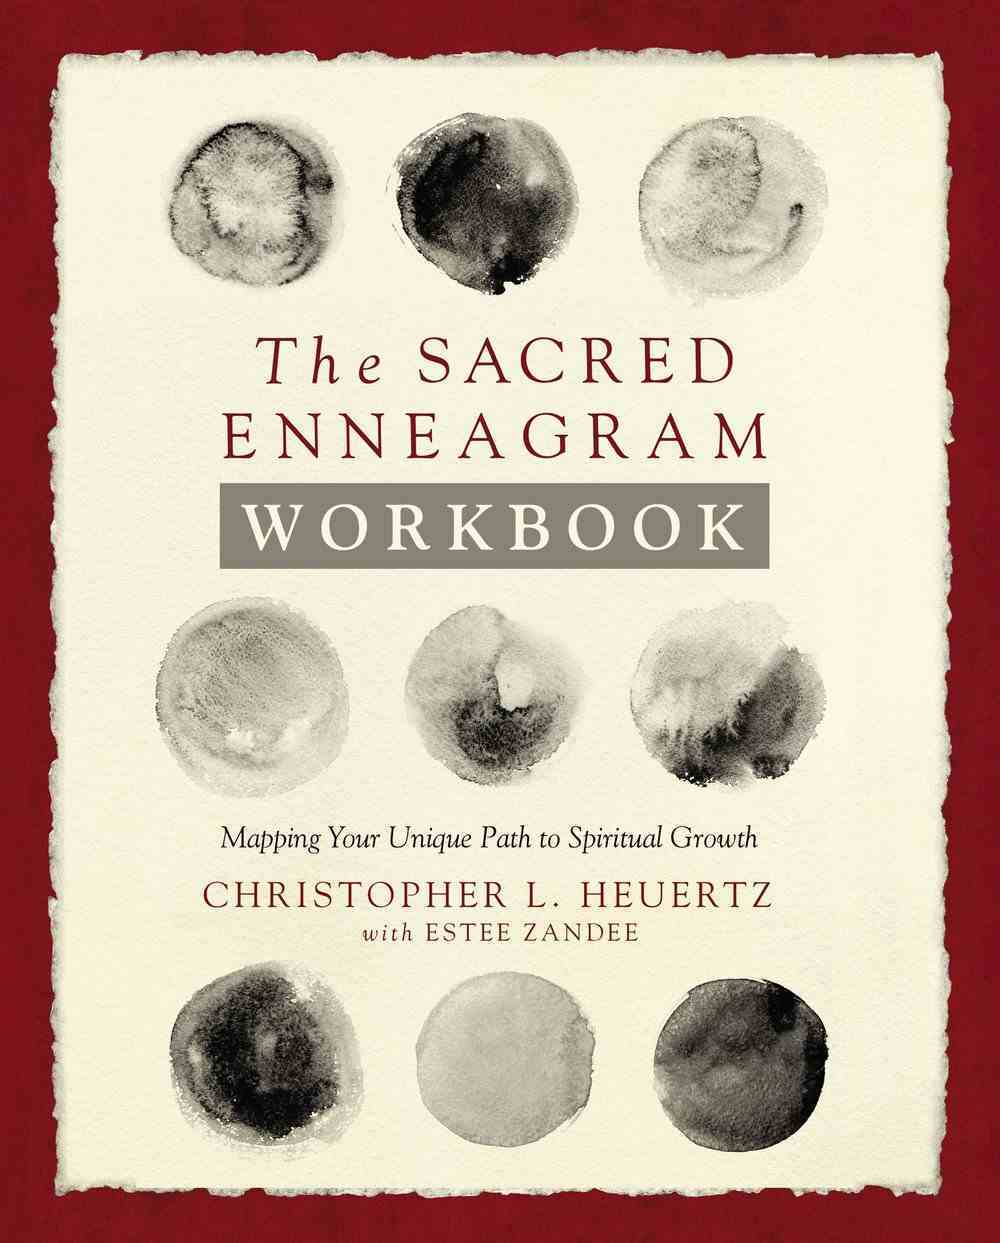 The Sacred Enneagram Workbook: Mapping Your Unique Path to Spiritual Growth Paperback